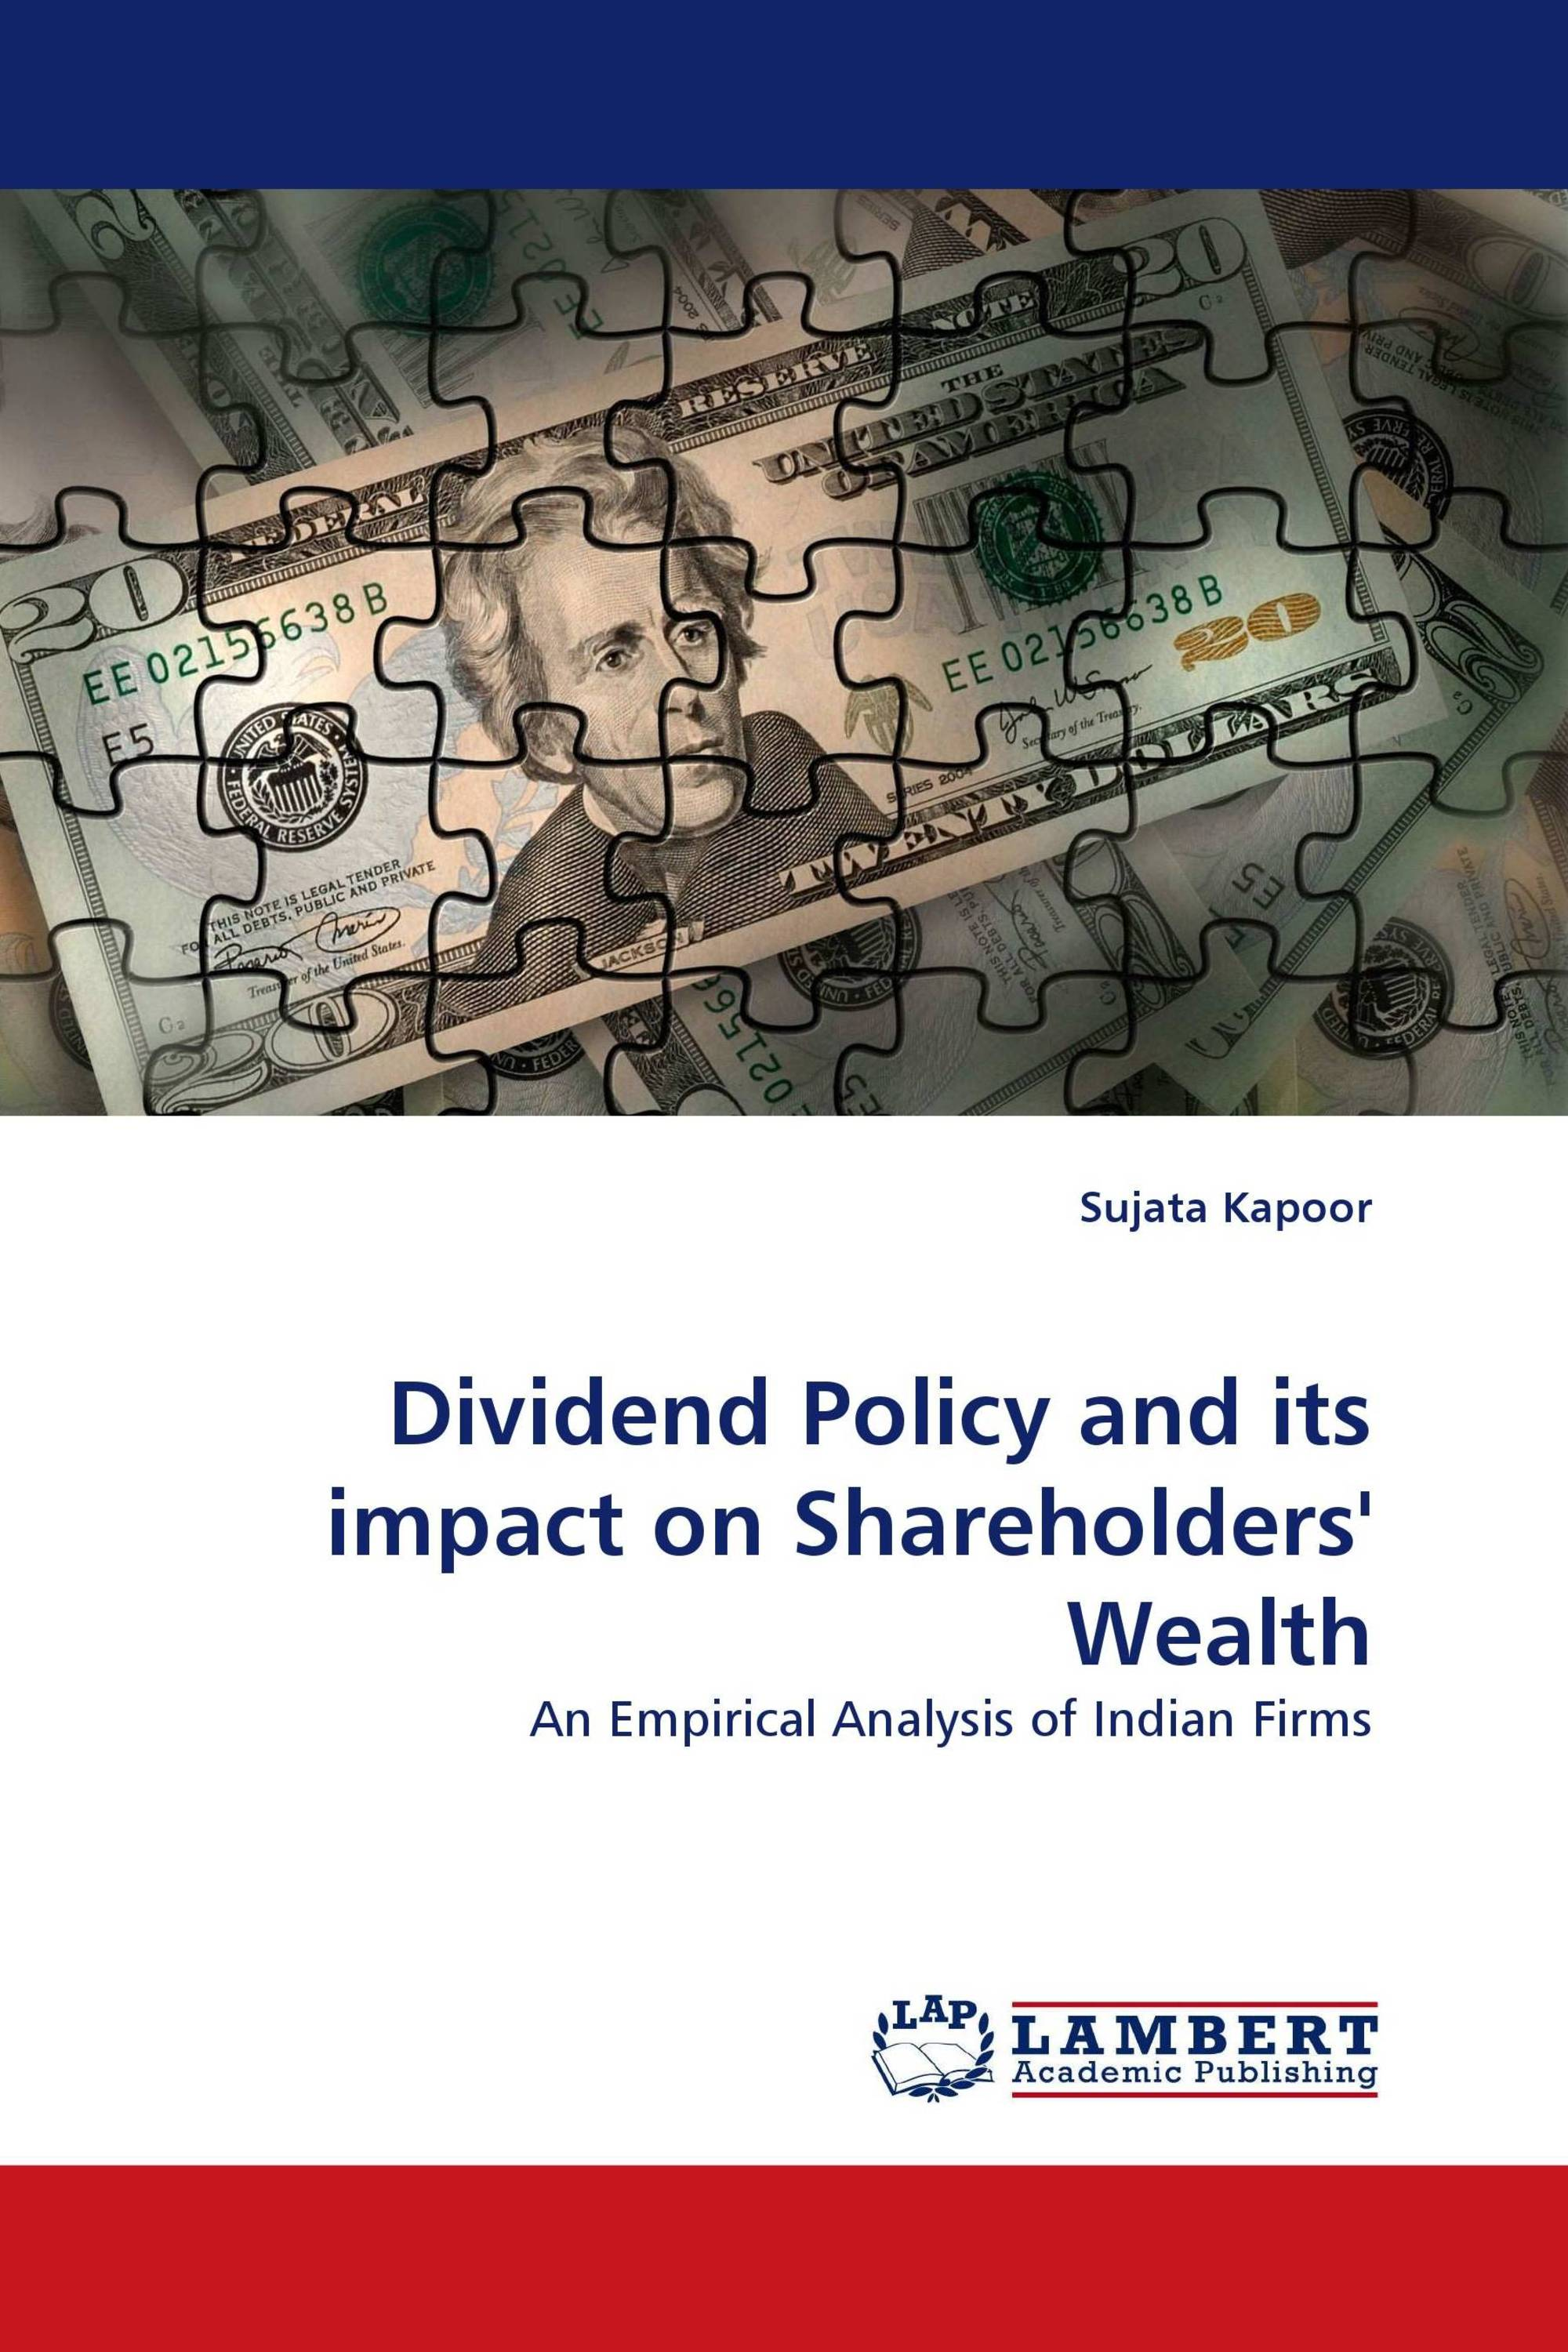 Dividend Policy and its impact on Shareholders' Wealth